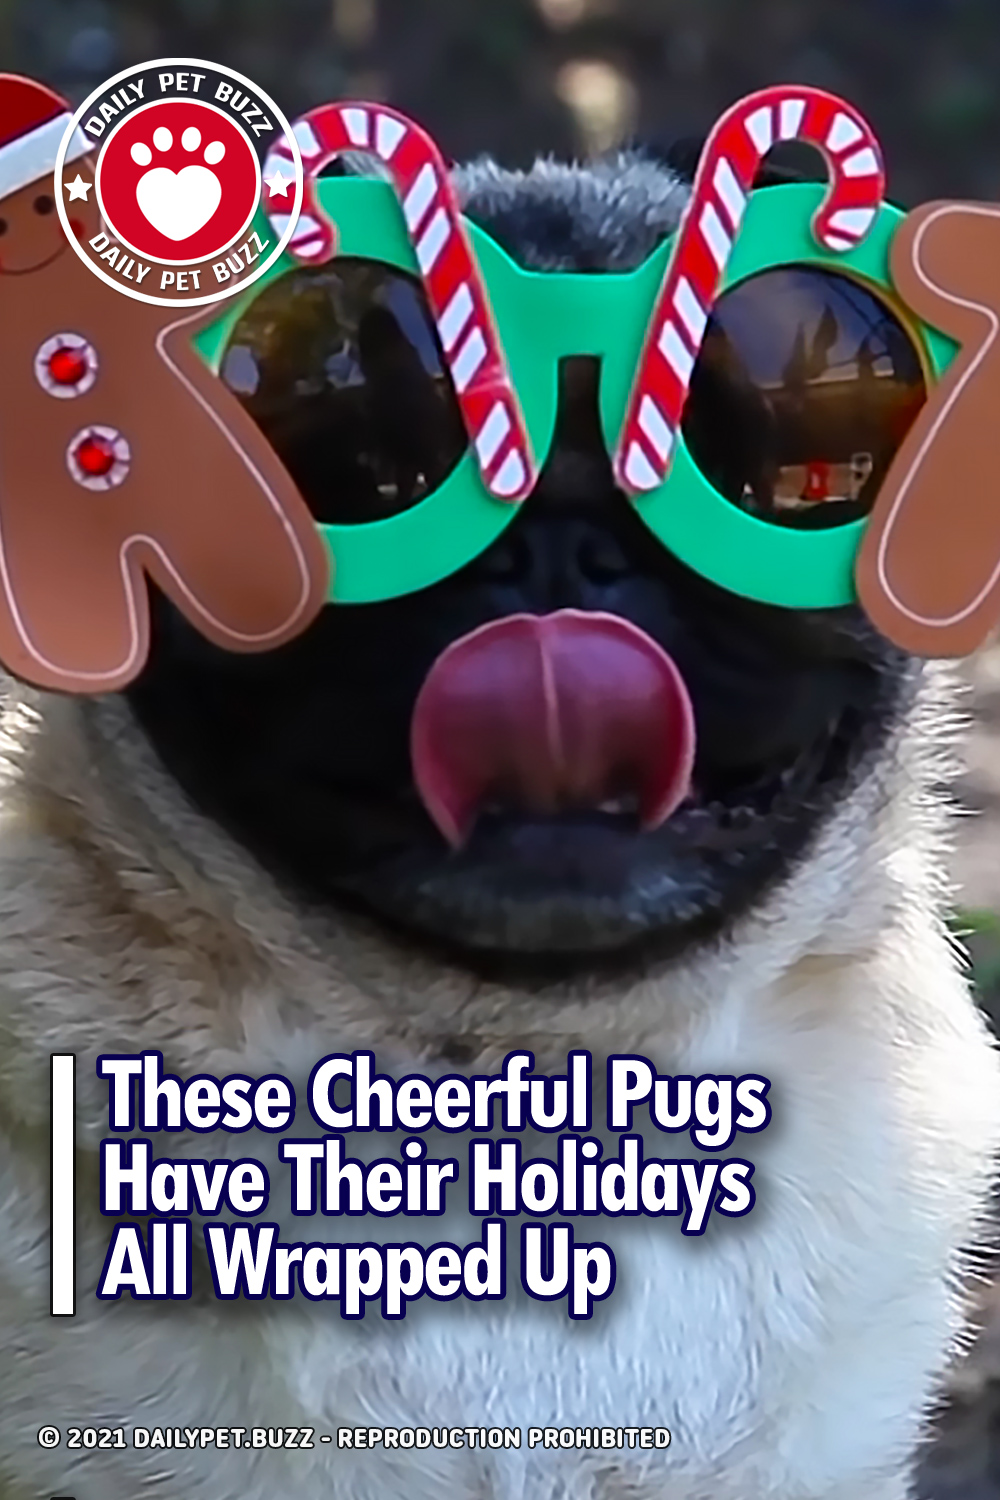 These Cheerful Pugs Have Their Holidays All Wrapped Up